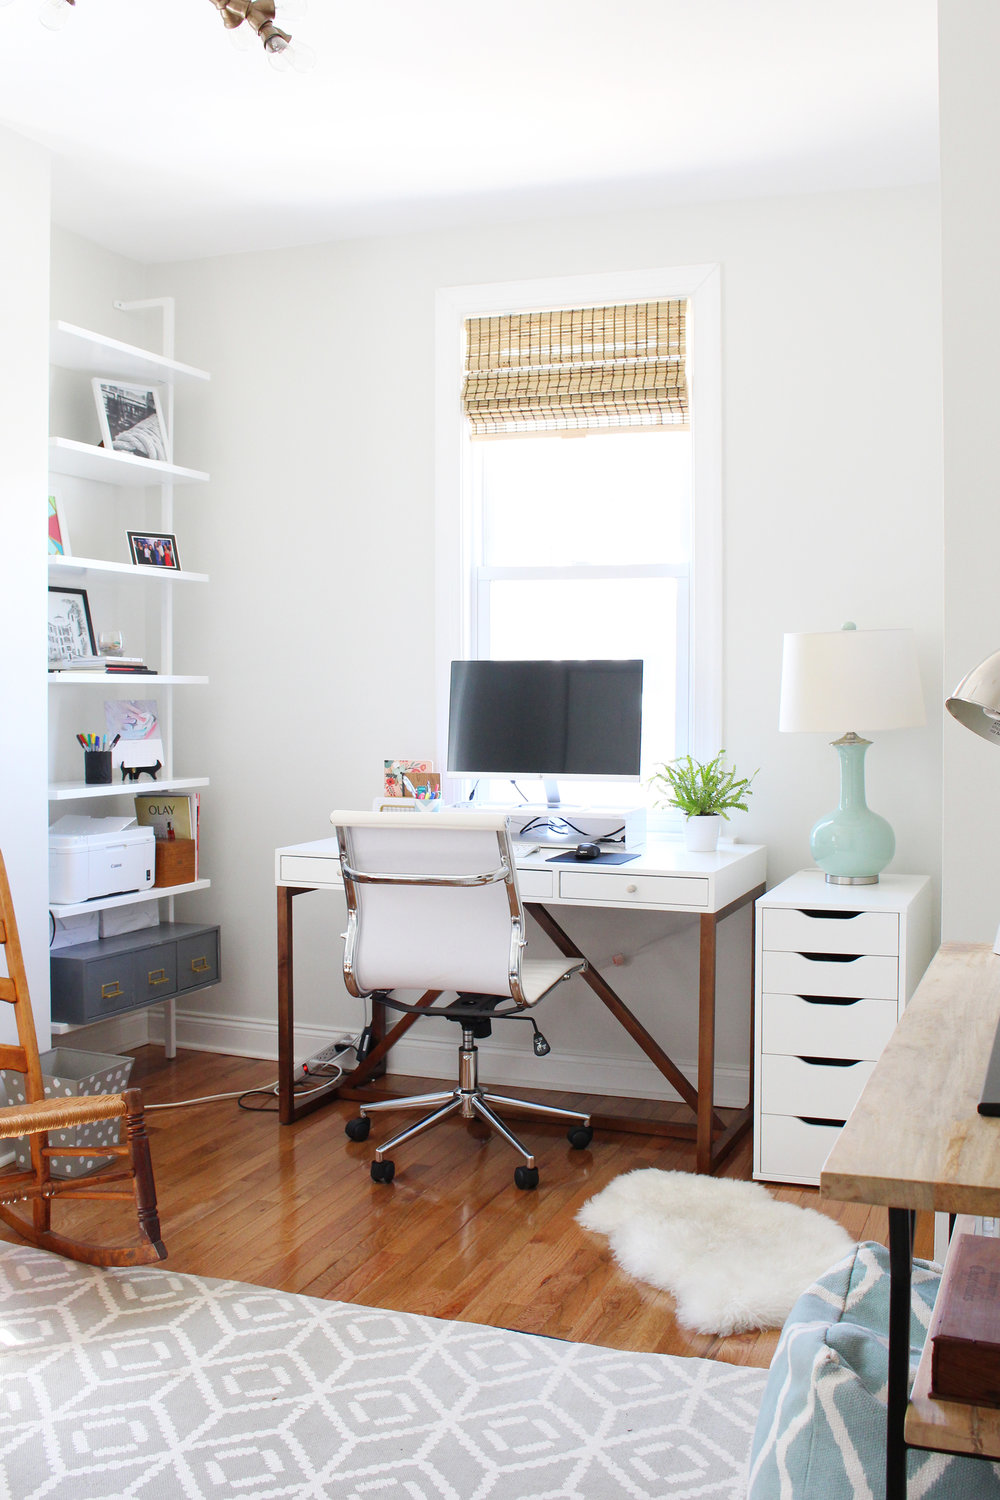 One Room Challenge: Mix & Match Design Company's home office. Photo of workspace progress.